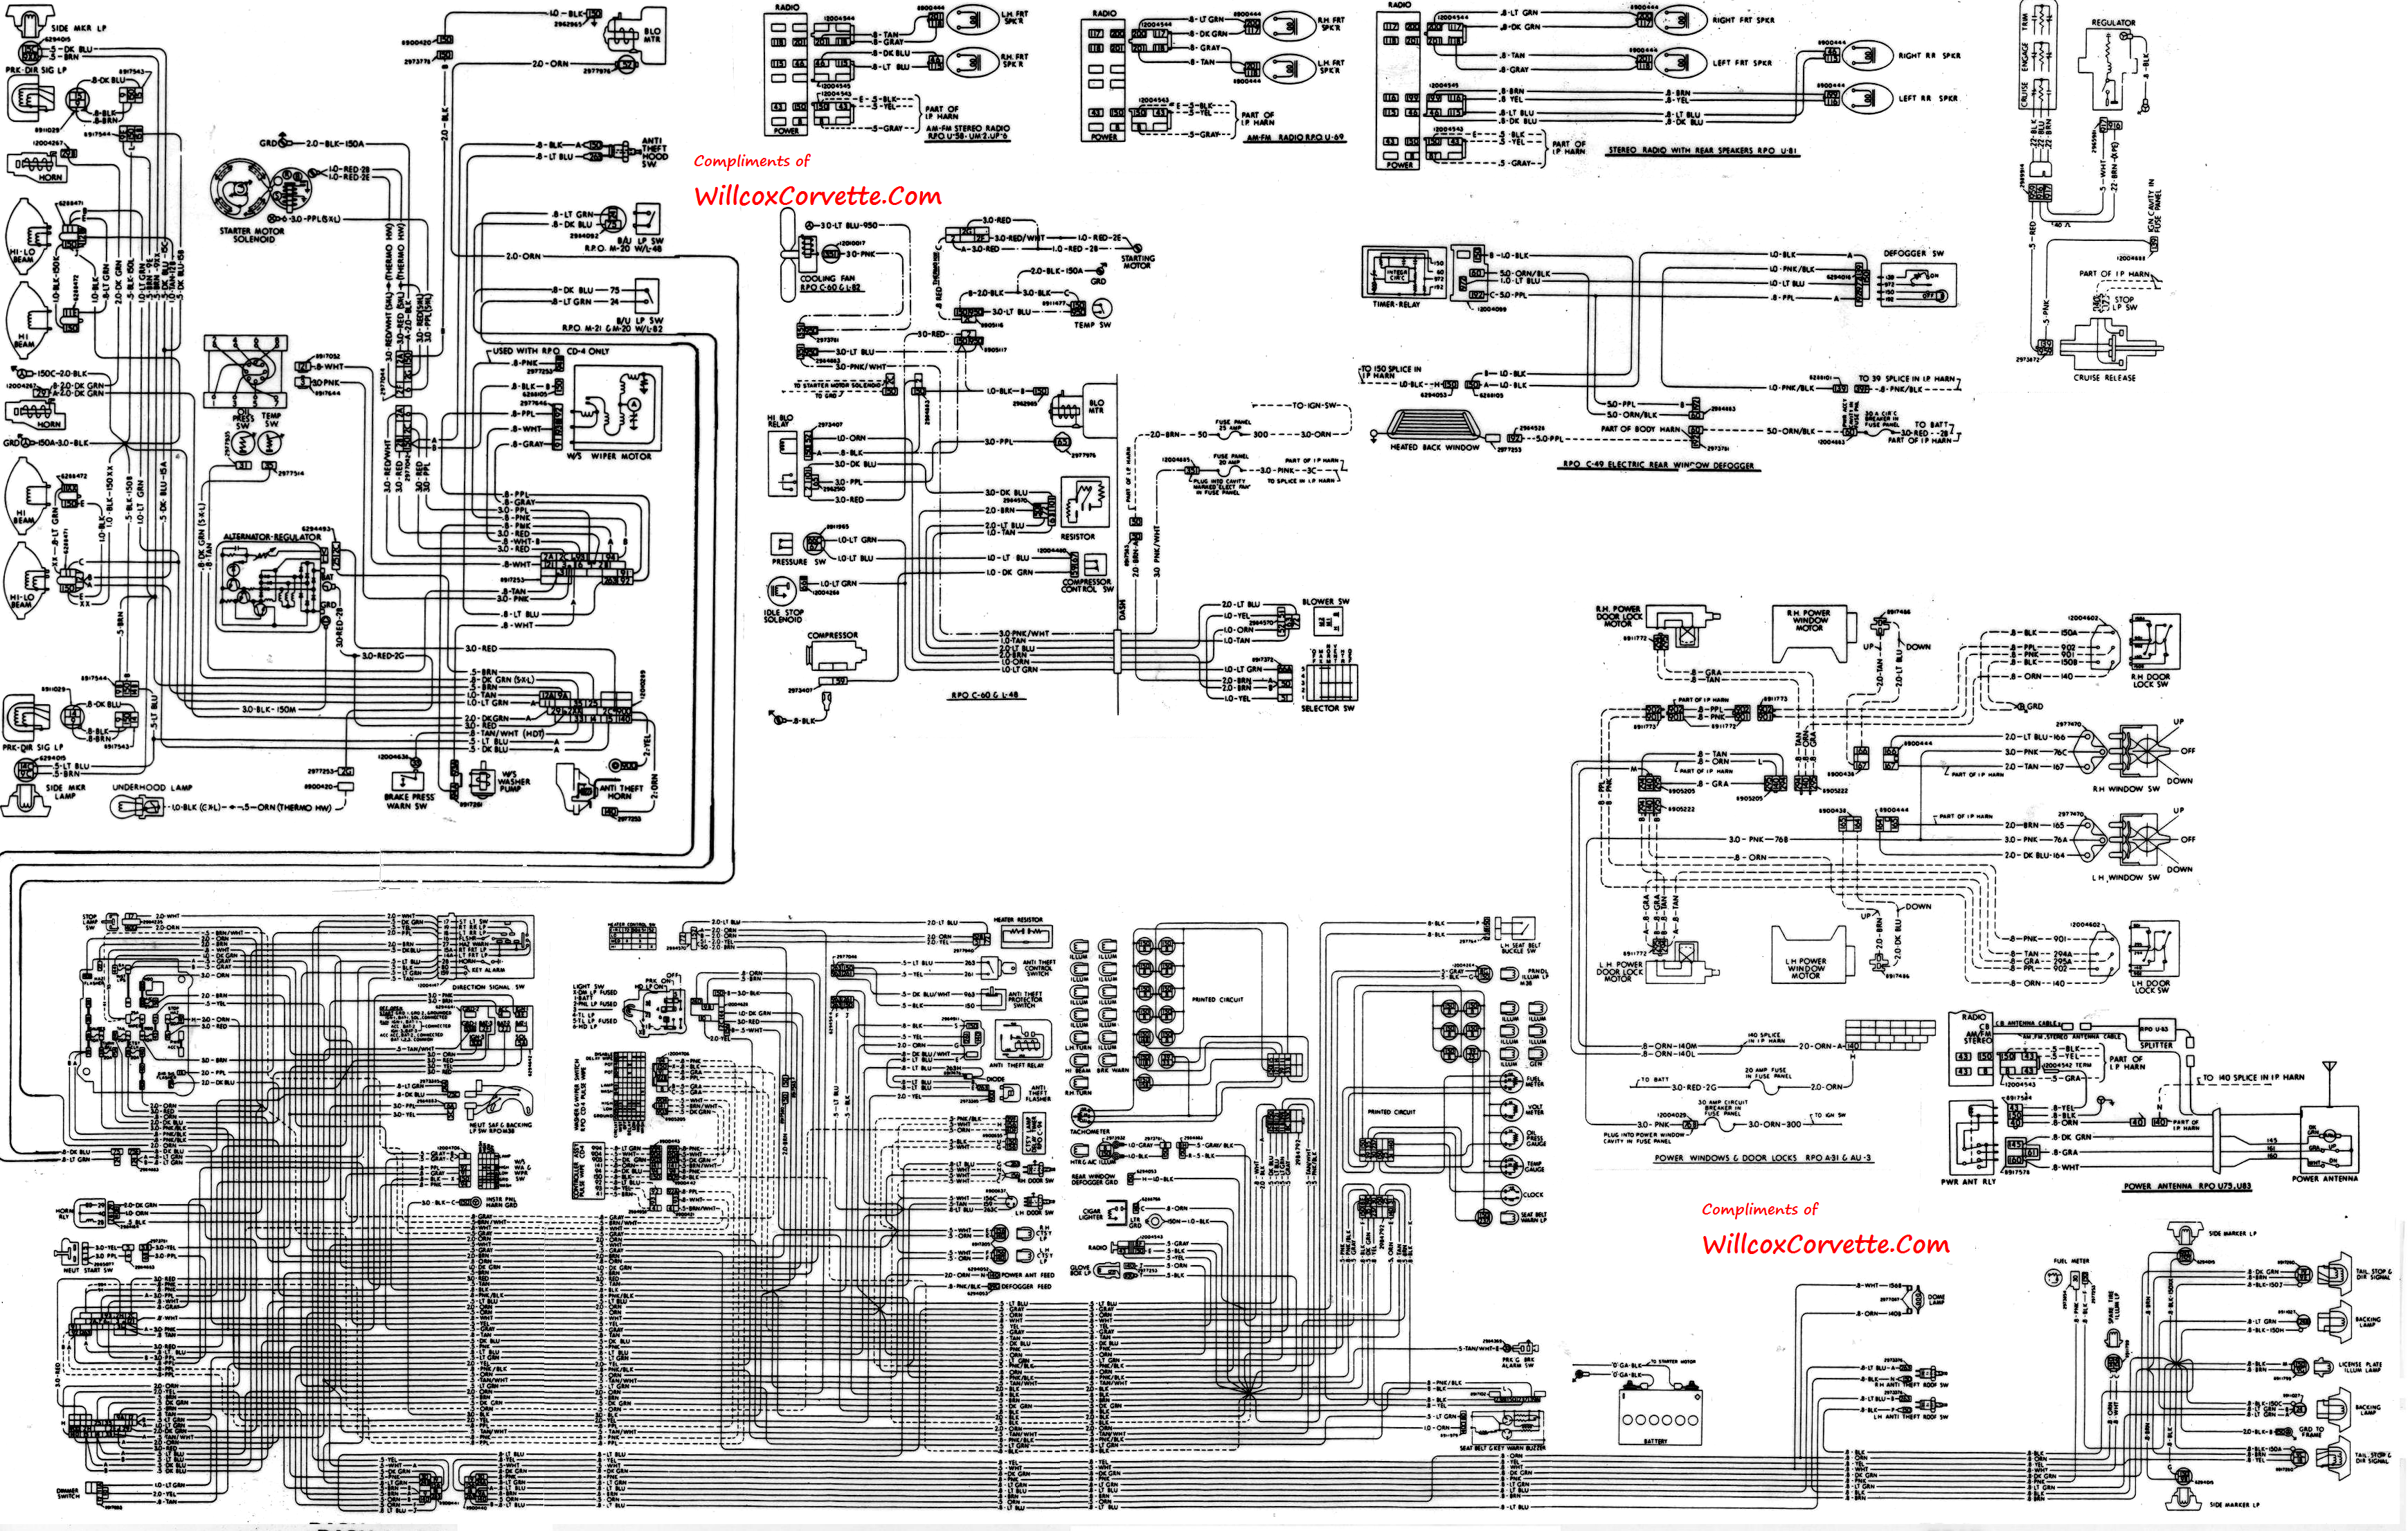 1979 wire diagram 2000 corvette wiring diagram on 2000 download wirning diagrams 2000 C5 Corvette Wiring Diagram at eliteediting.co